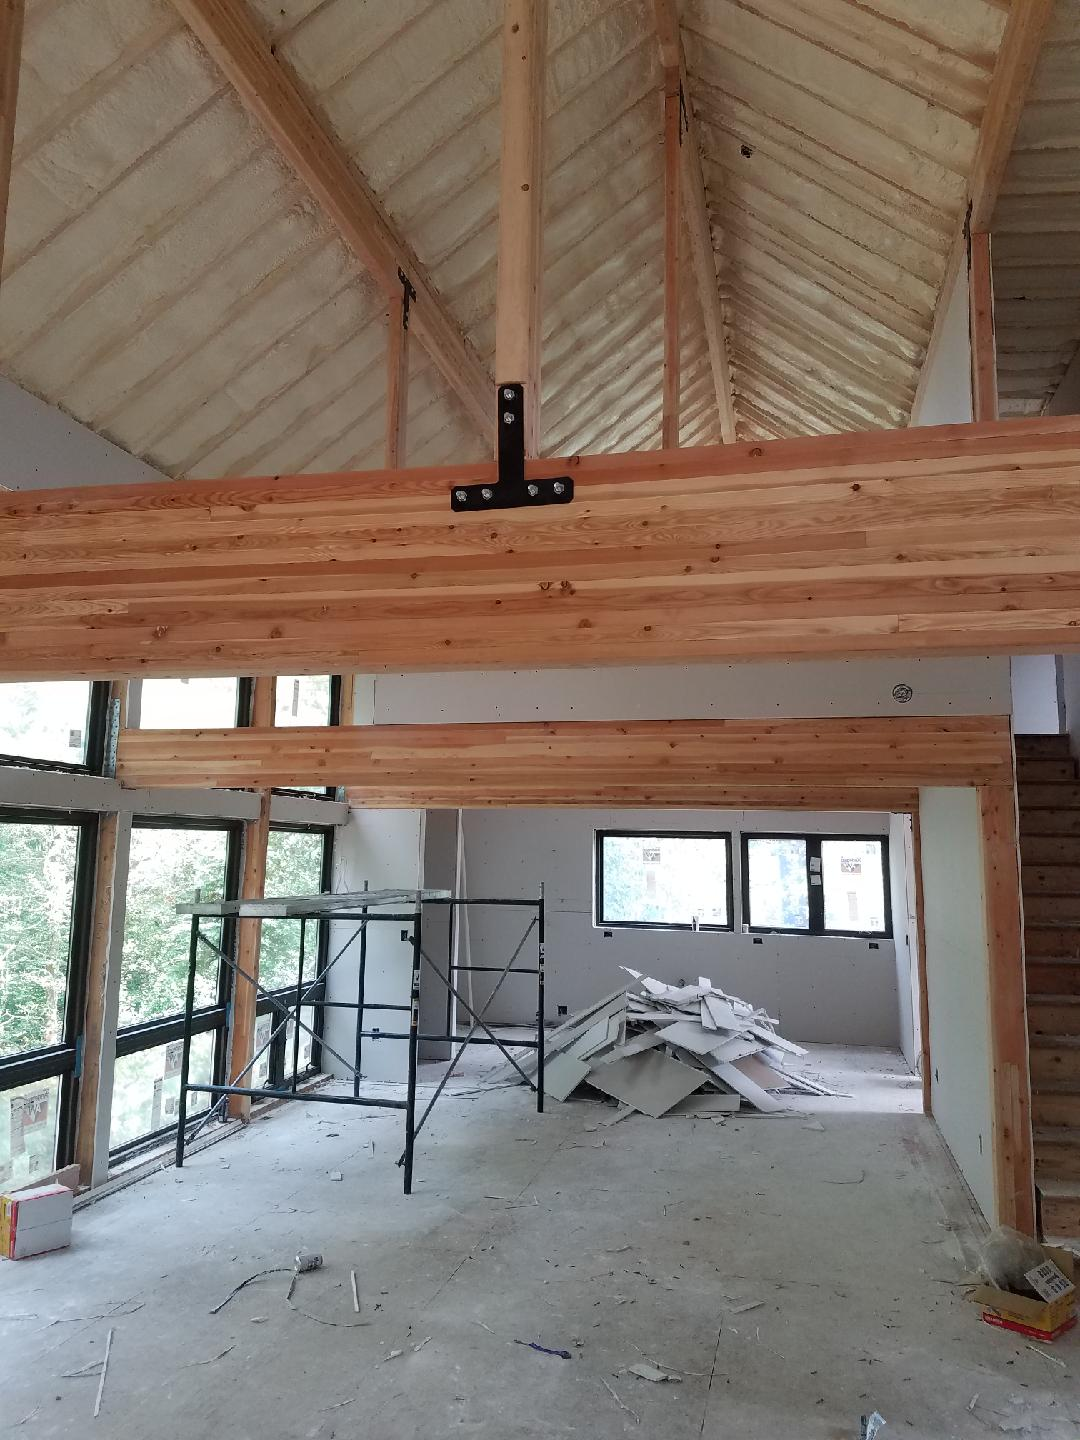 Now sheetrocked, the great room takes shape. Laminated girders and roof beams to the fore!